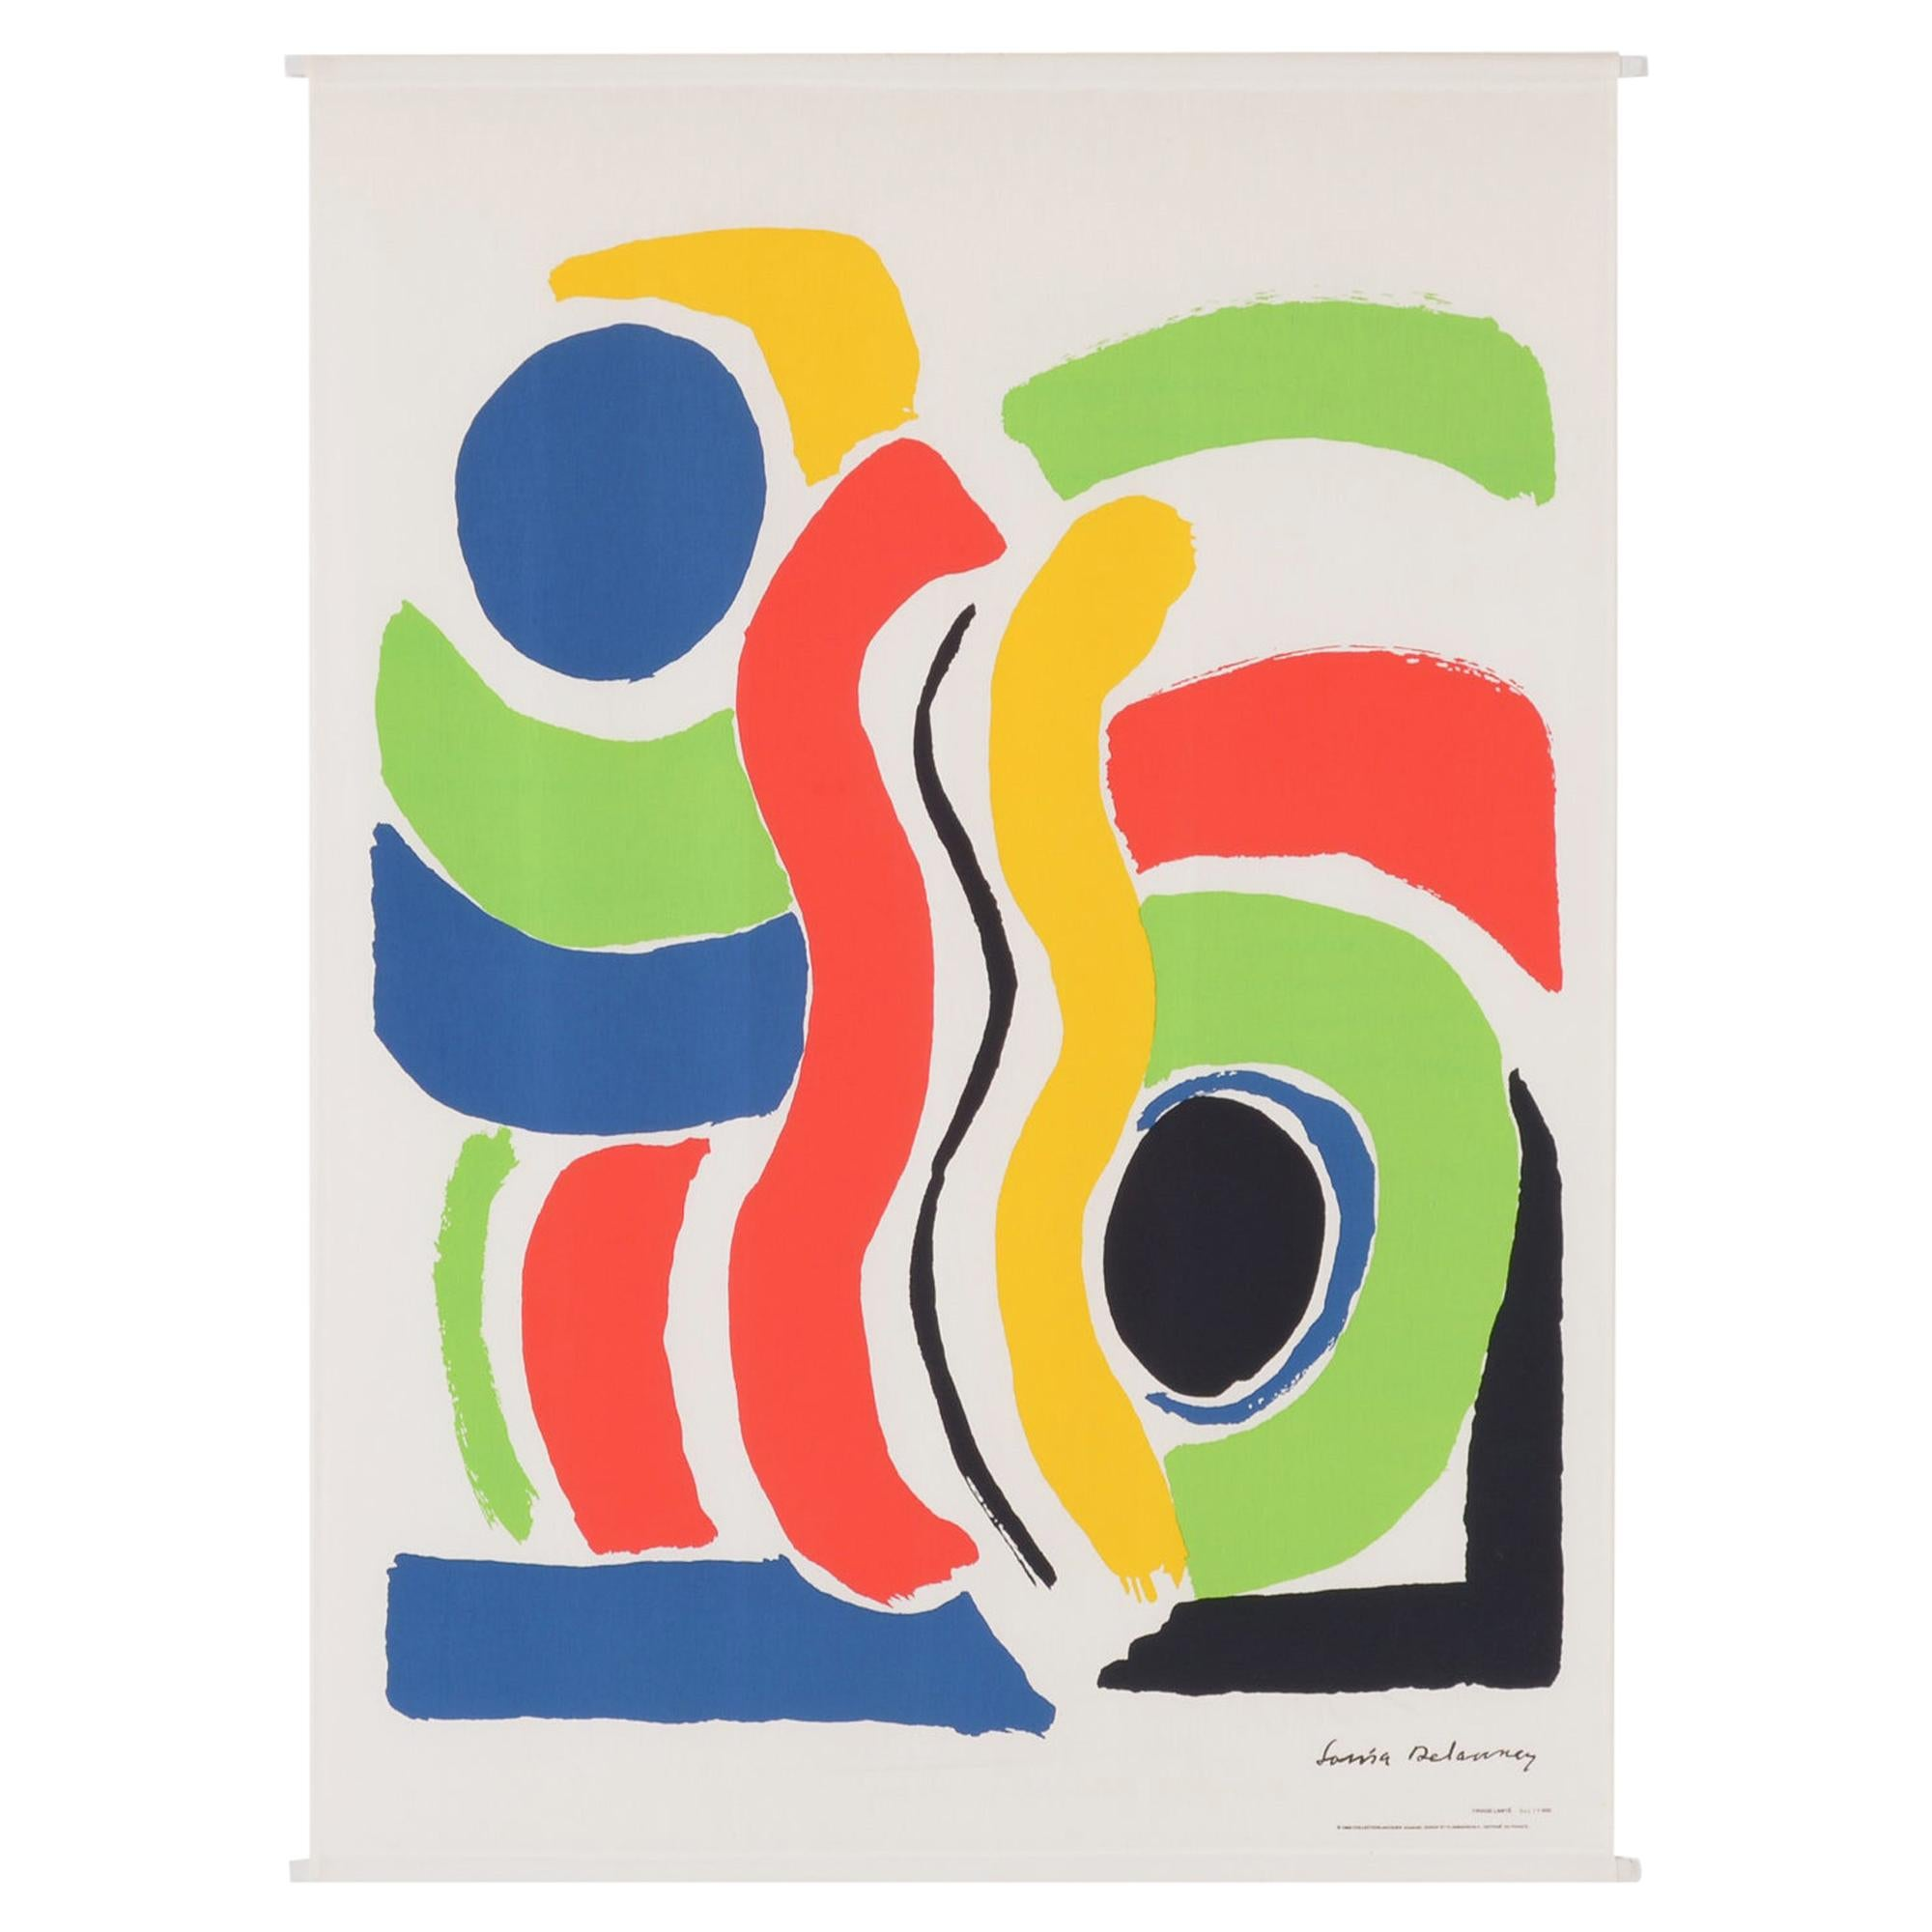 Extra Large Print on Canvas of Sonia Delaunay by Jacques Damase, 1992